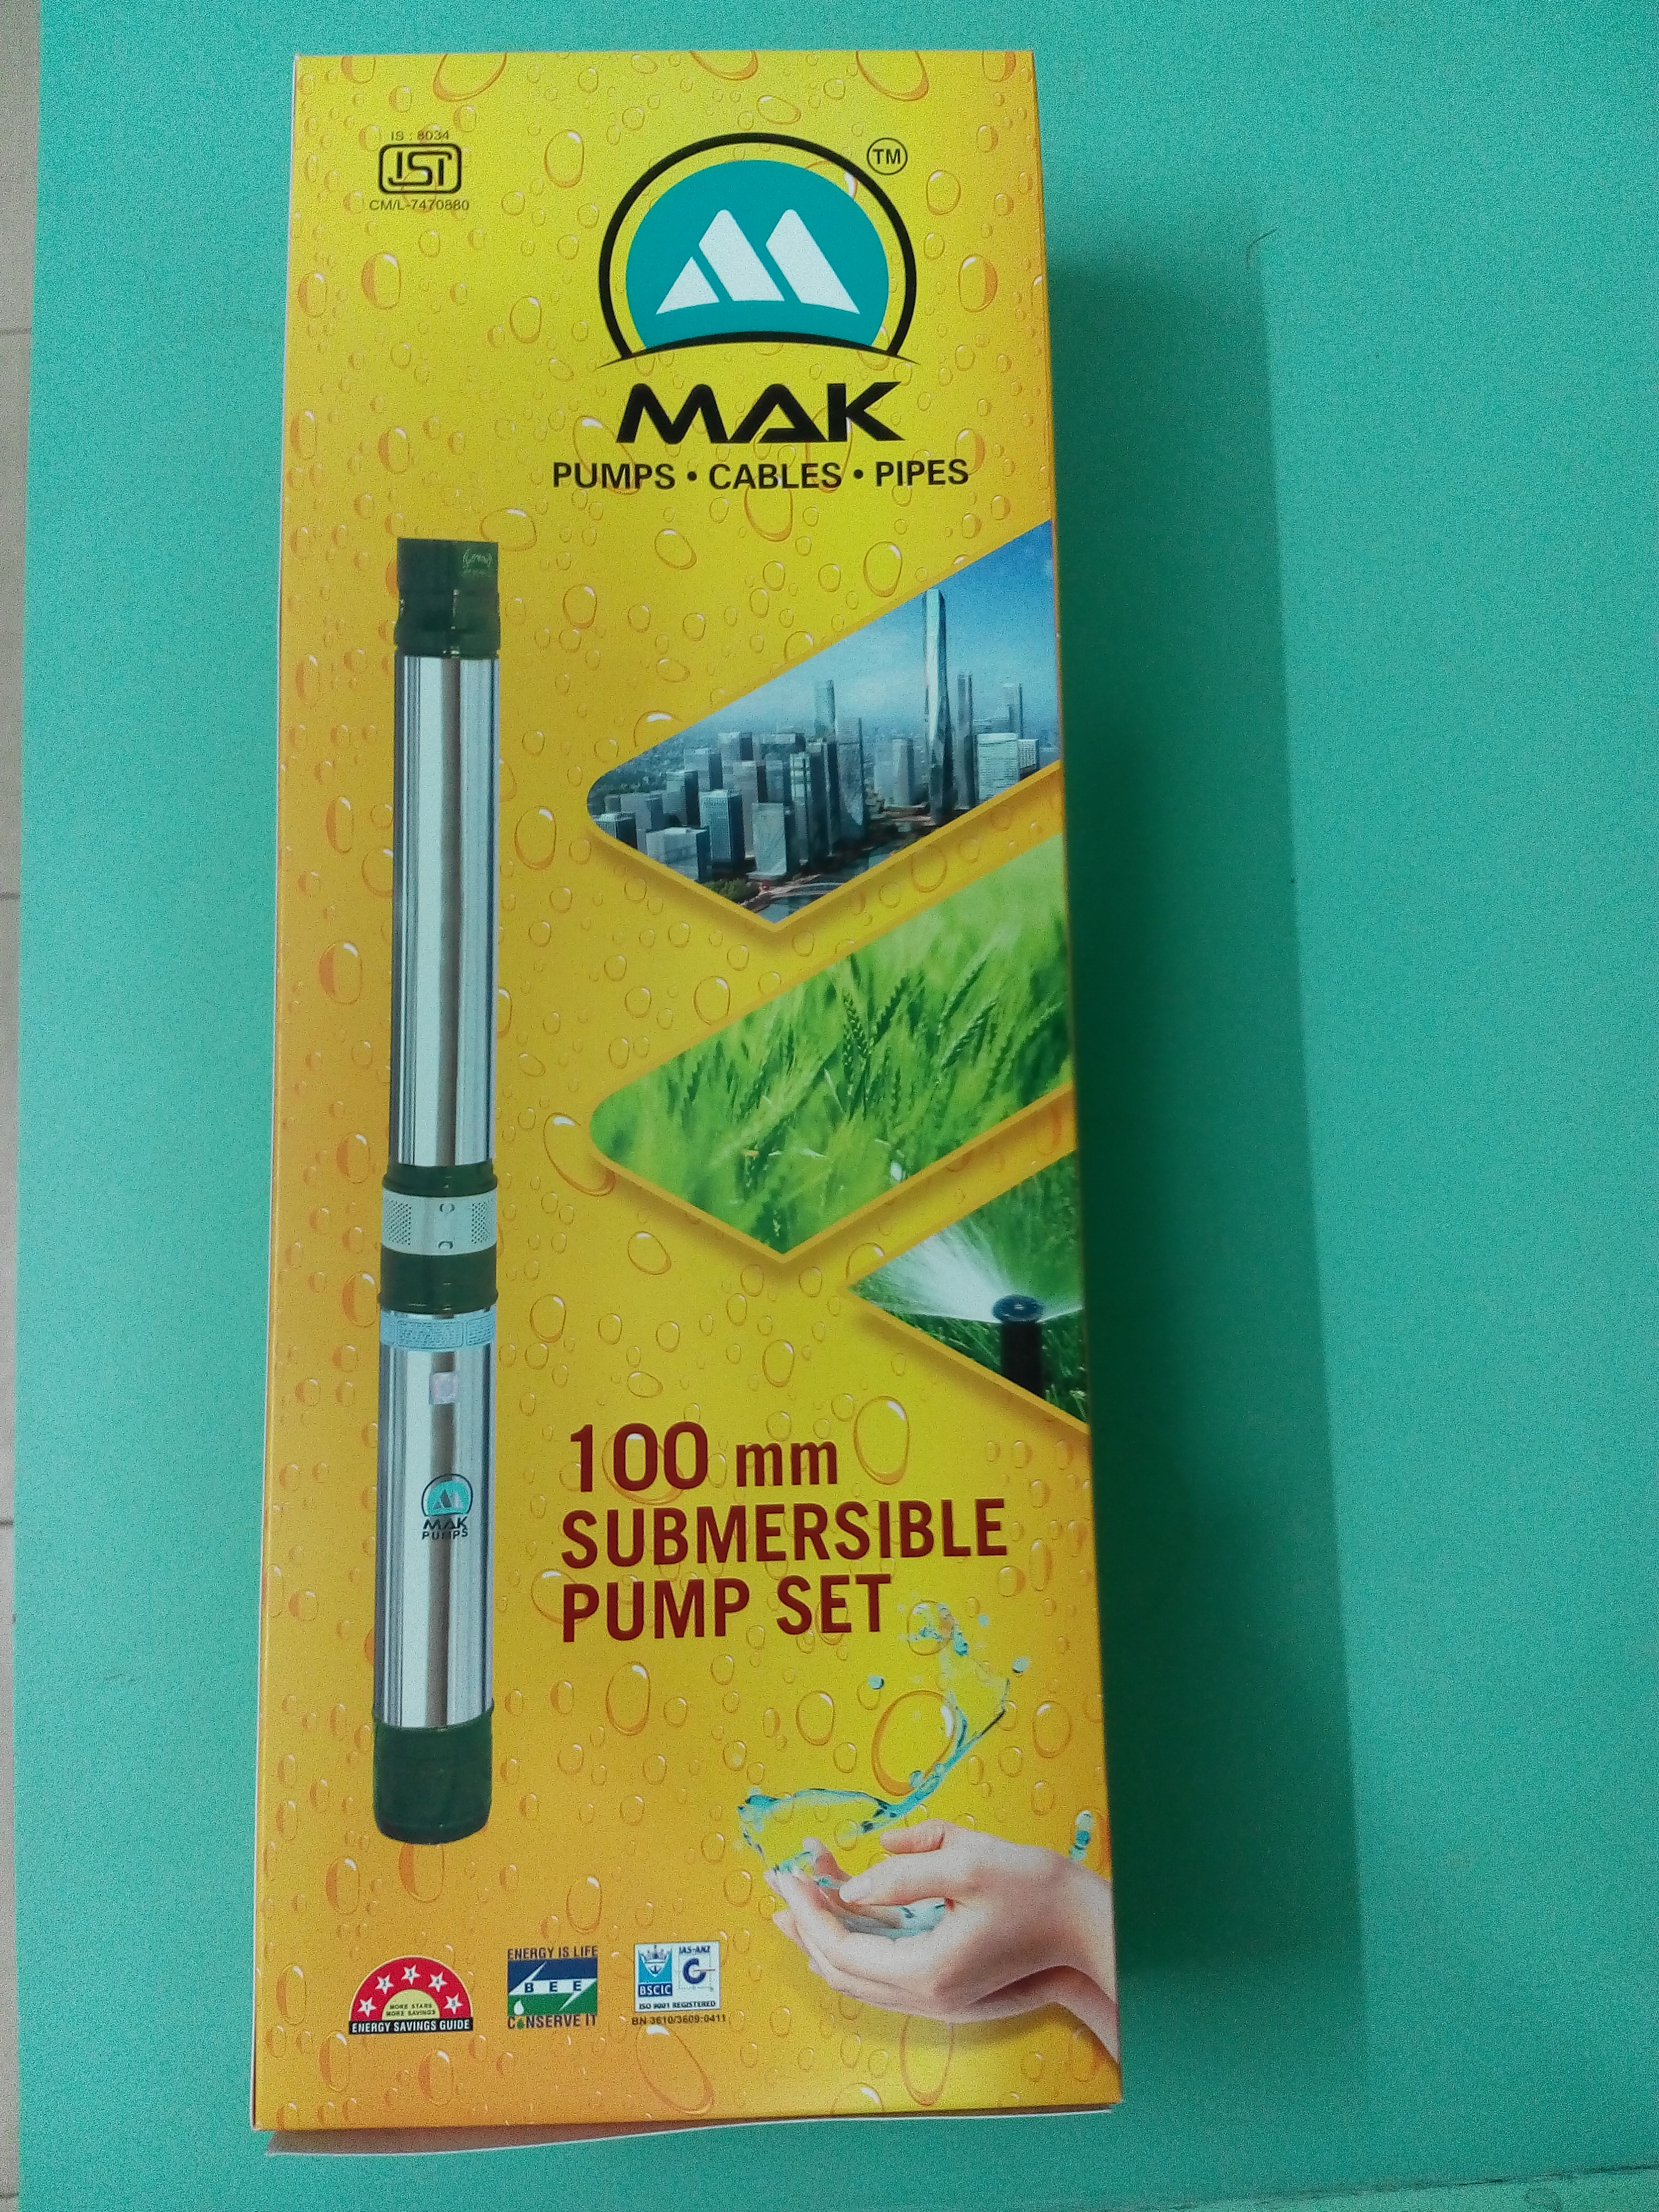 Mak Pump Industries manufacturers and exporters of Submersible Pumps and Motors are now pleased to supply 100 MM bore hole pumps in new design box.